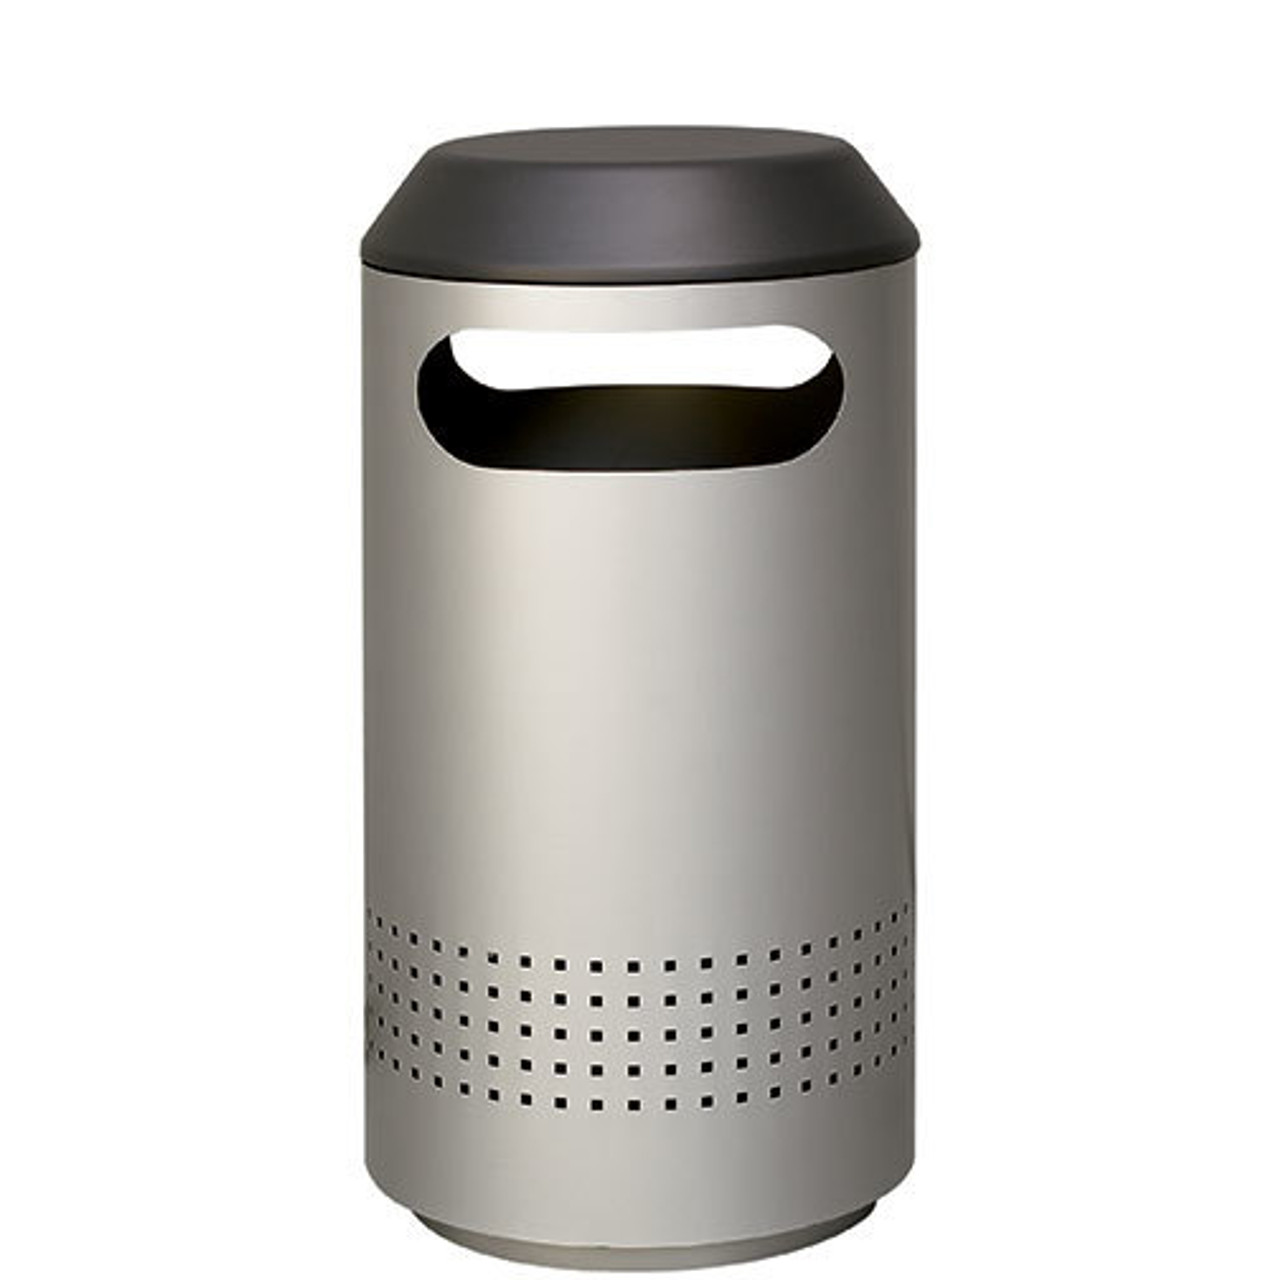 Peter Pepper Trash Cans